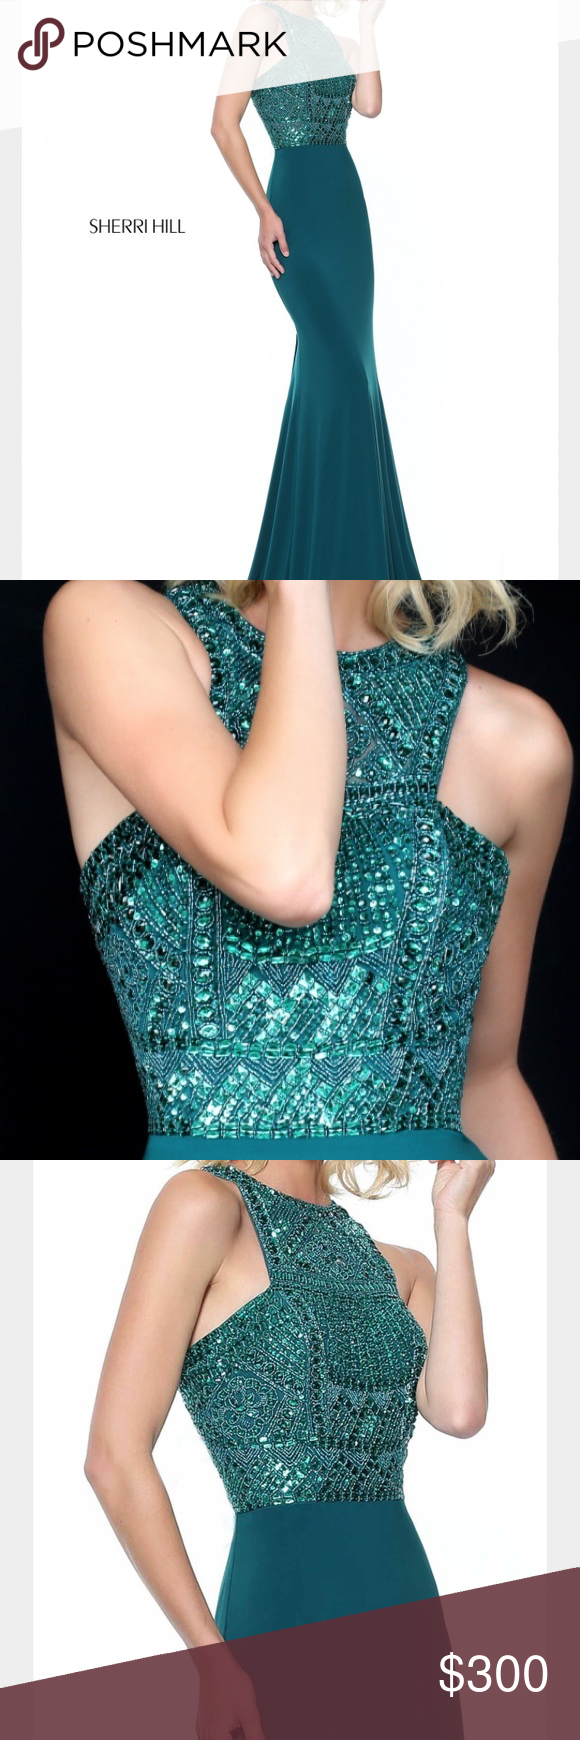 Spotted while shopping on poshmark sherri hill emerald prom dress